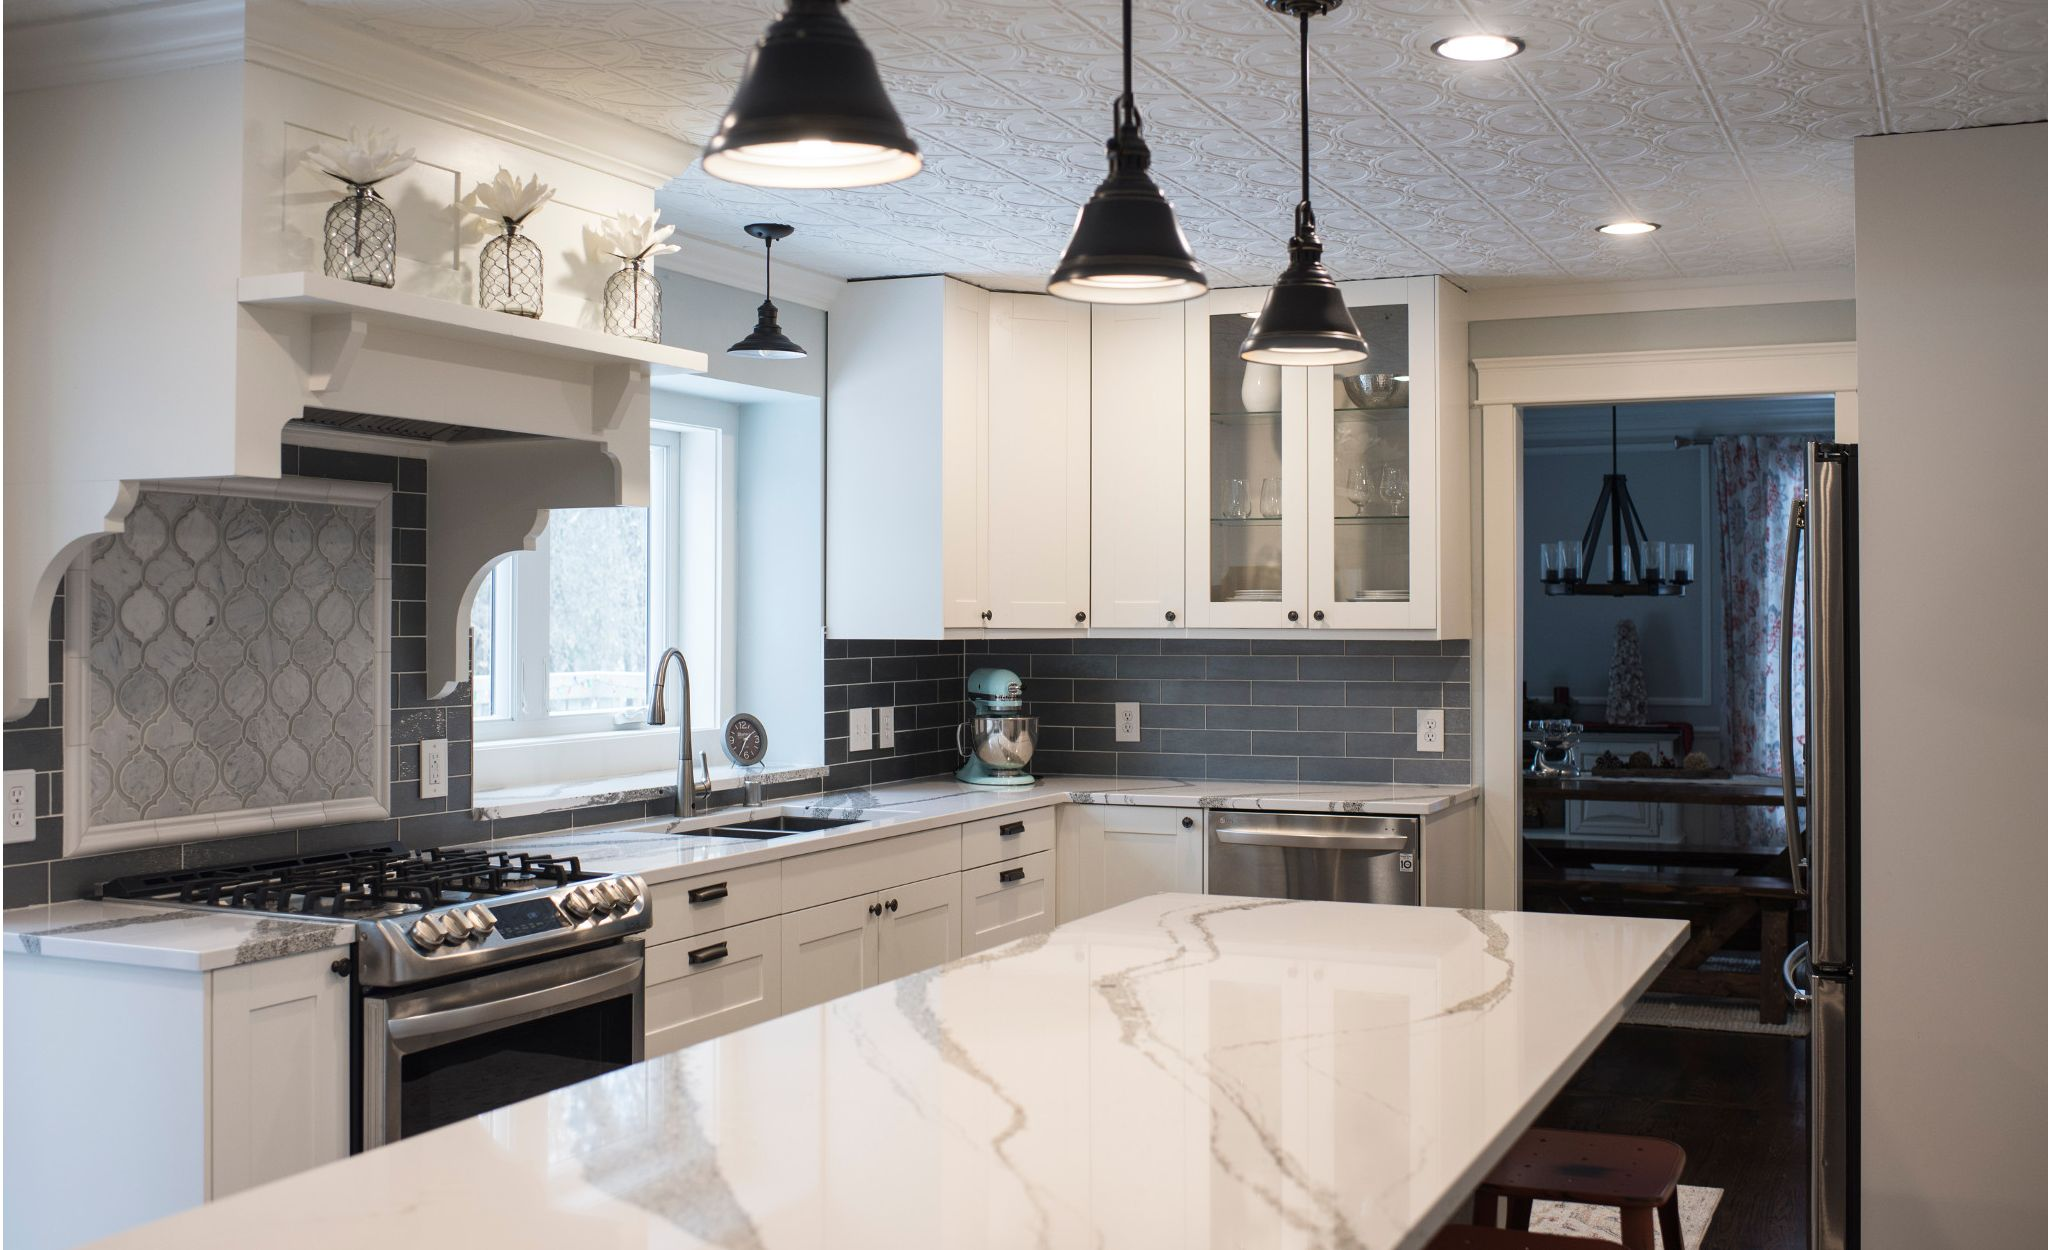 A gray and white kitchen with Cambria Annicca countertops.